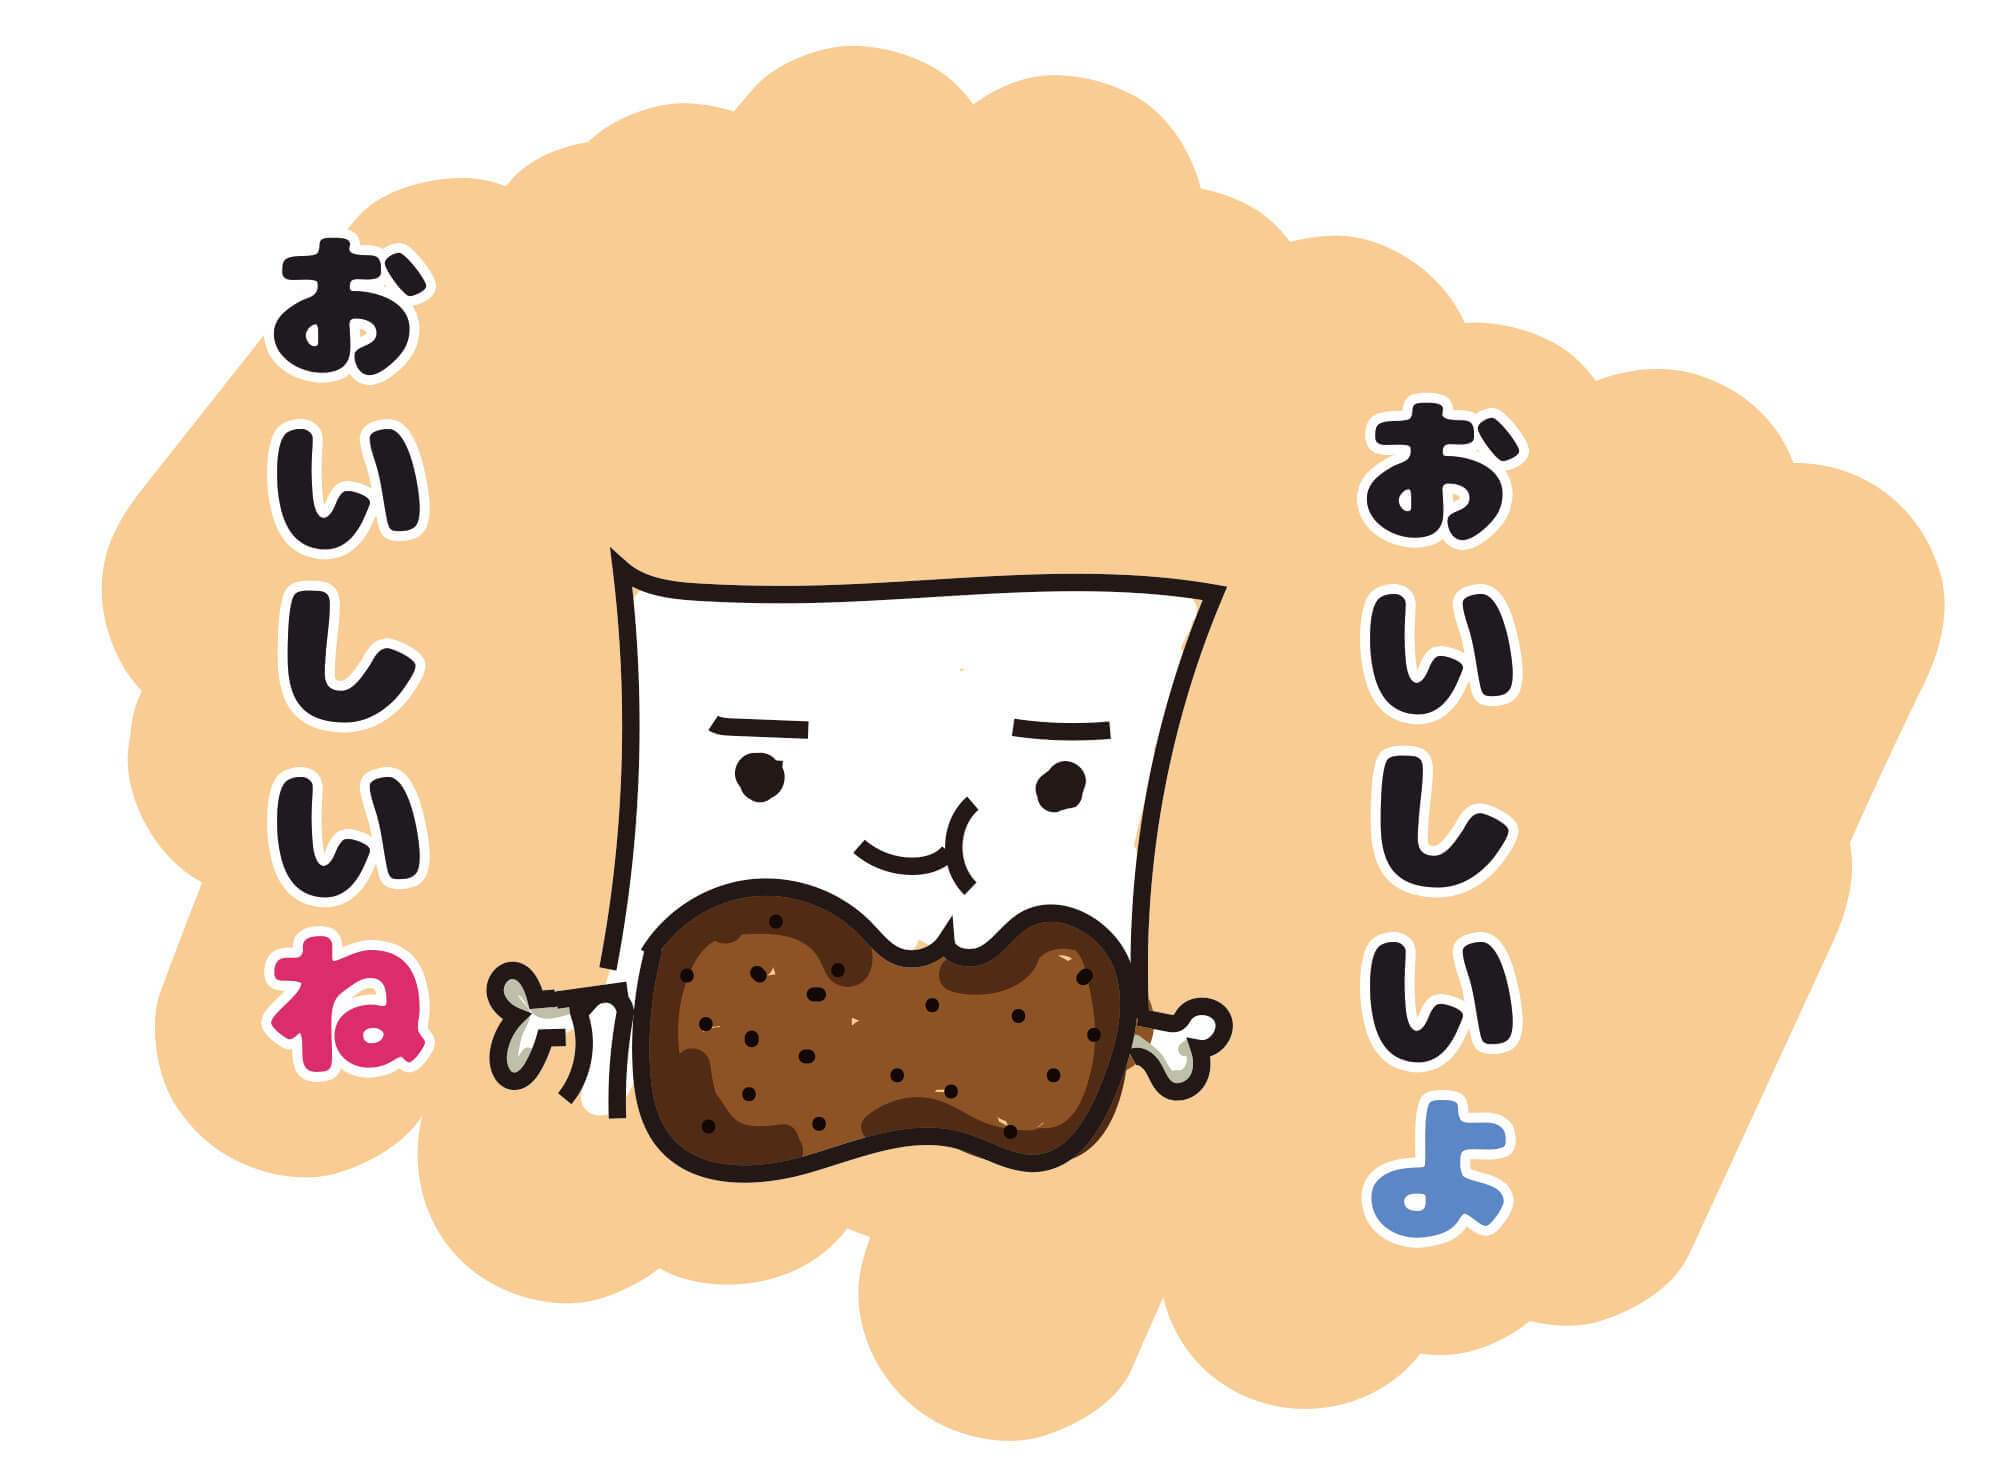 Particle ね and particle よ